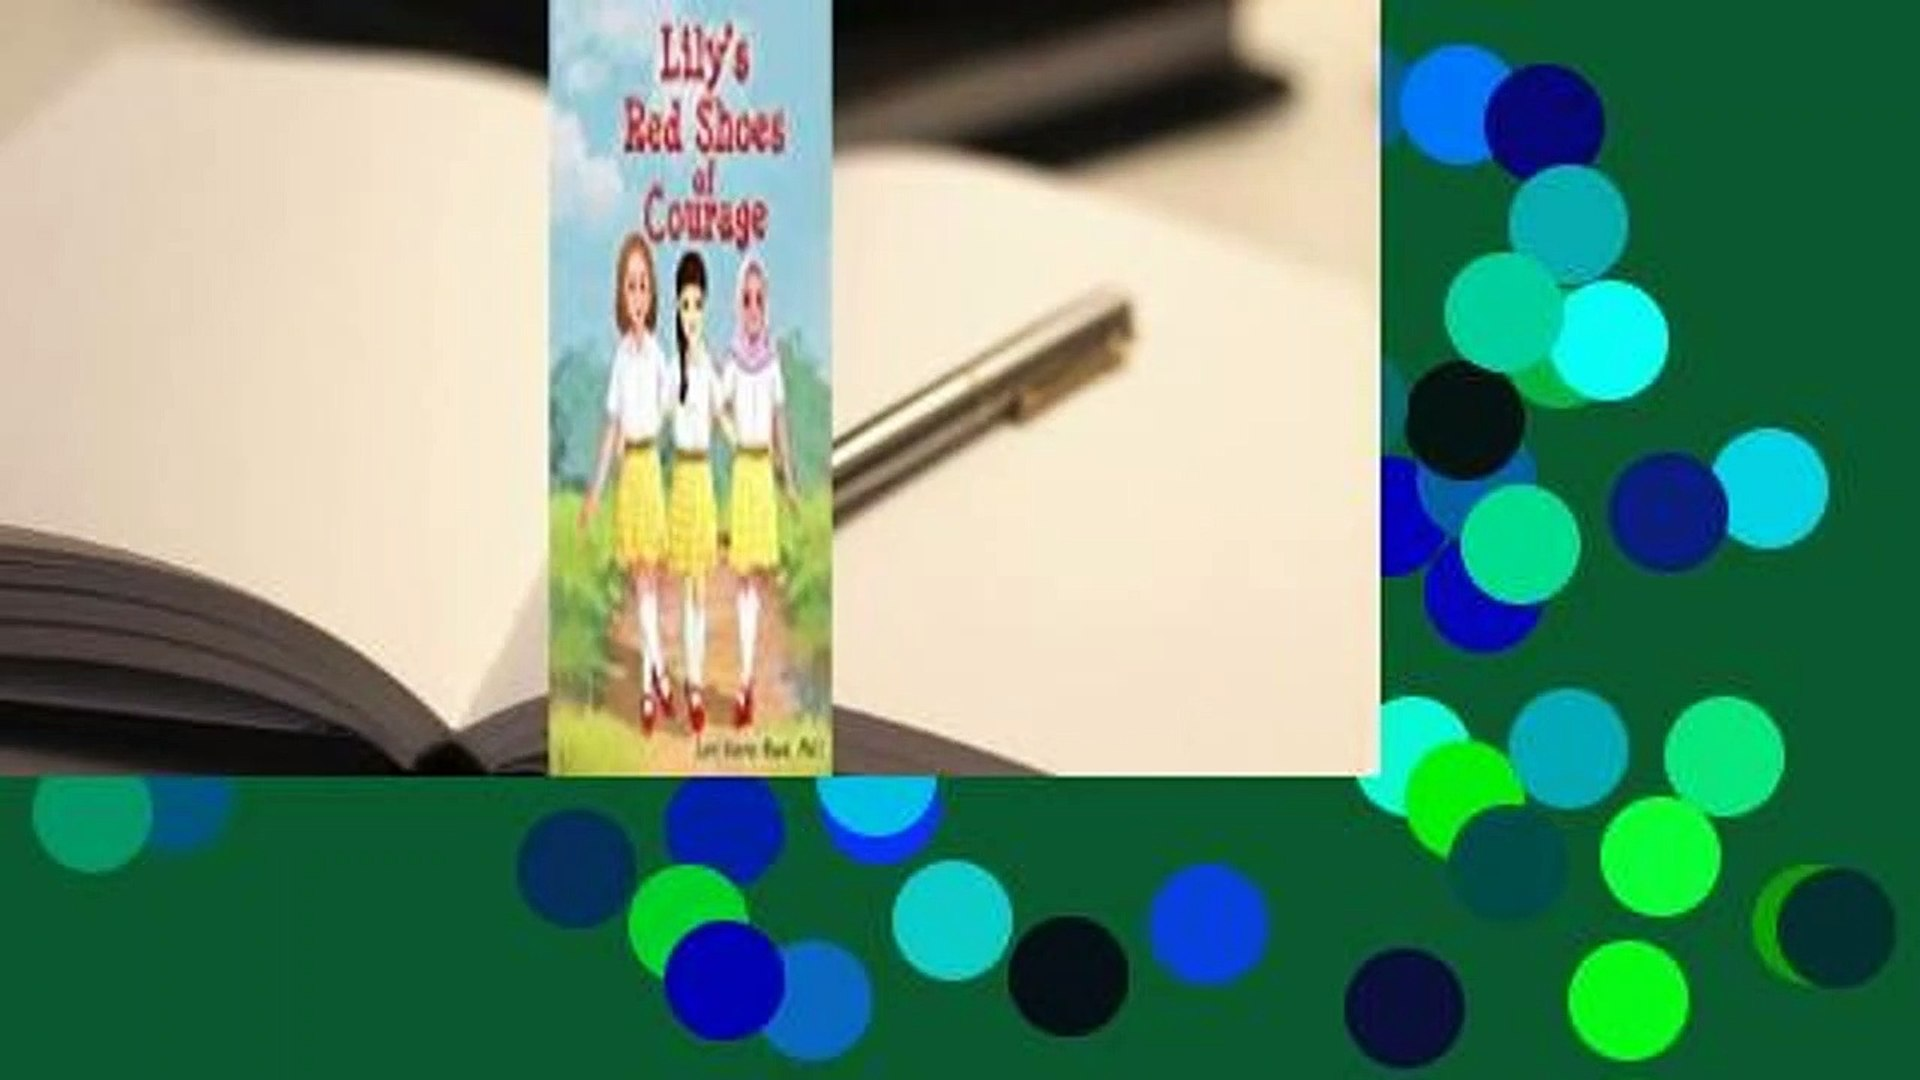 [Read] Lily's Red Shoes of Courage  For Kindle